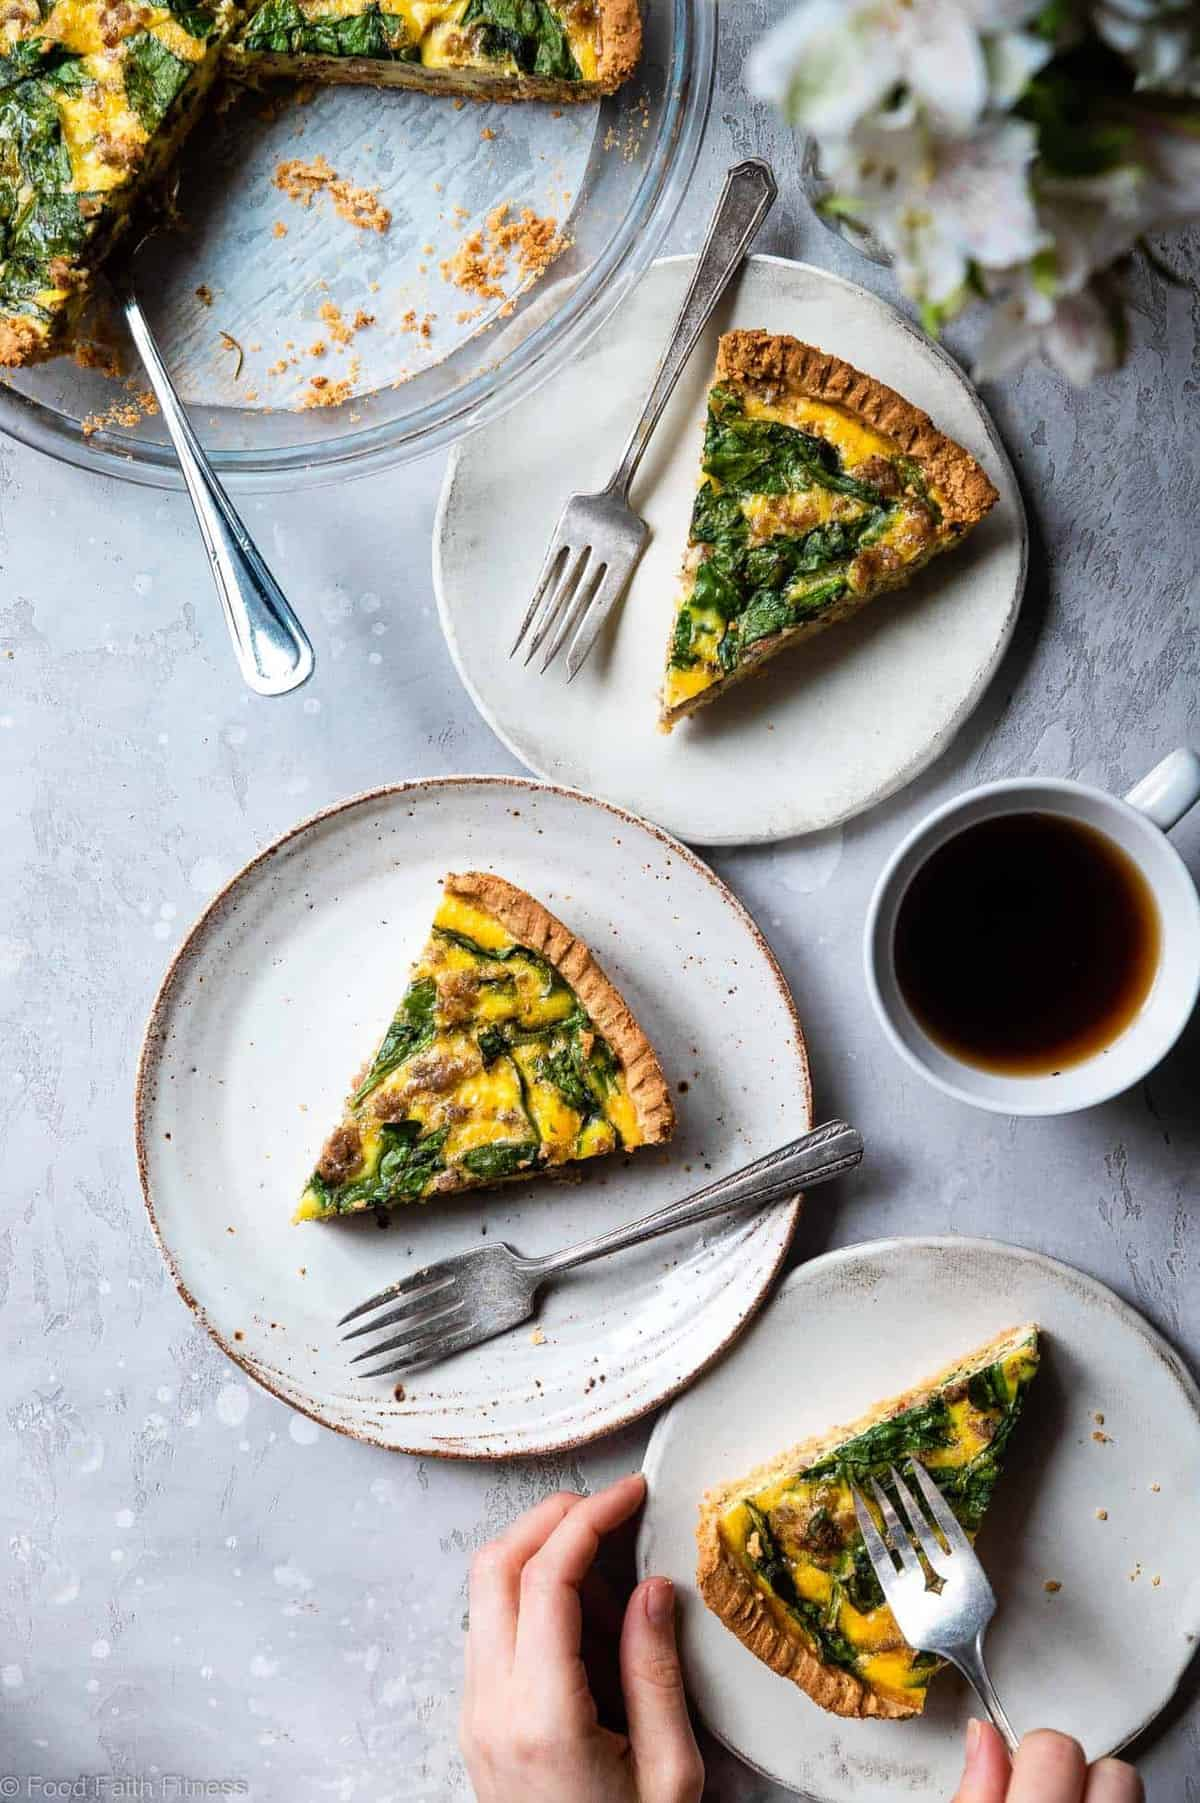 Gluten Free Low Carb Breakfast Quiche -This EASY low carb, dairy free and paleoQuiche has a homemade, buttery, flaky Almond Flour Crust! Sausage, spinach and eggs make a high protein, filling breakfast! Great for meal prep! | #Foodfaithfitness |